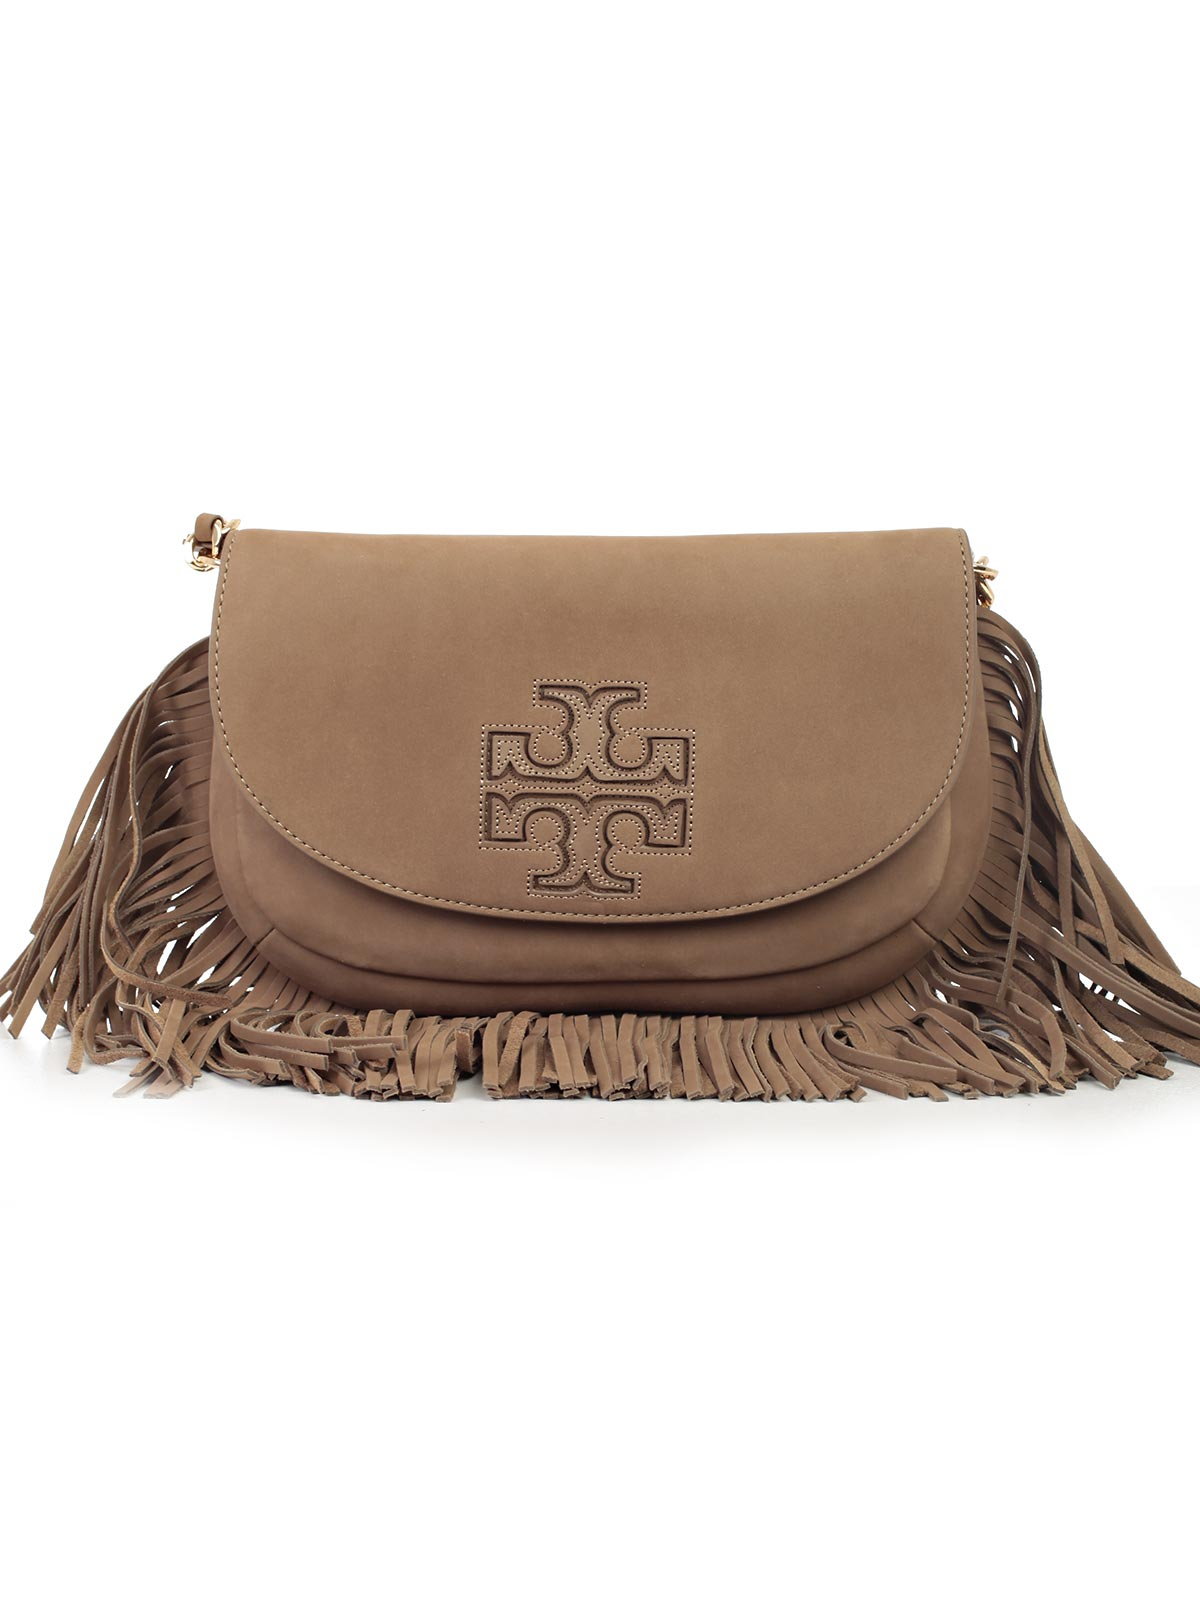 Picture of TORY BURCH BAG BORSA HARPER FRINGE MINI CROSS-BODY